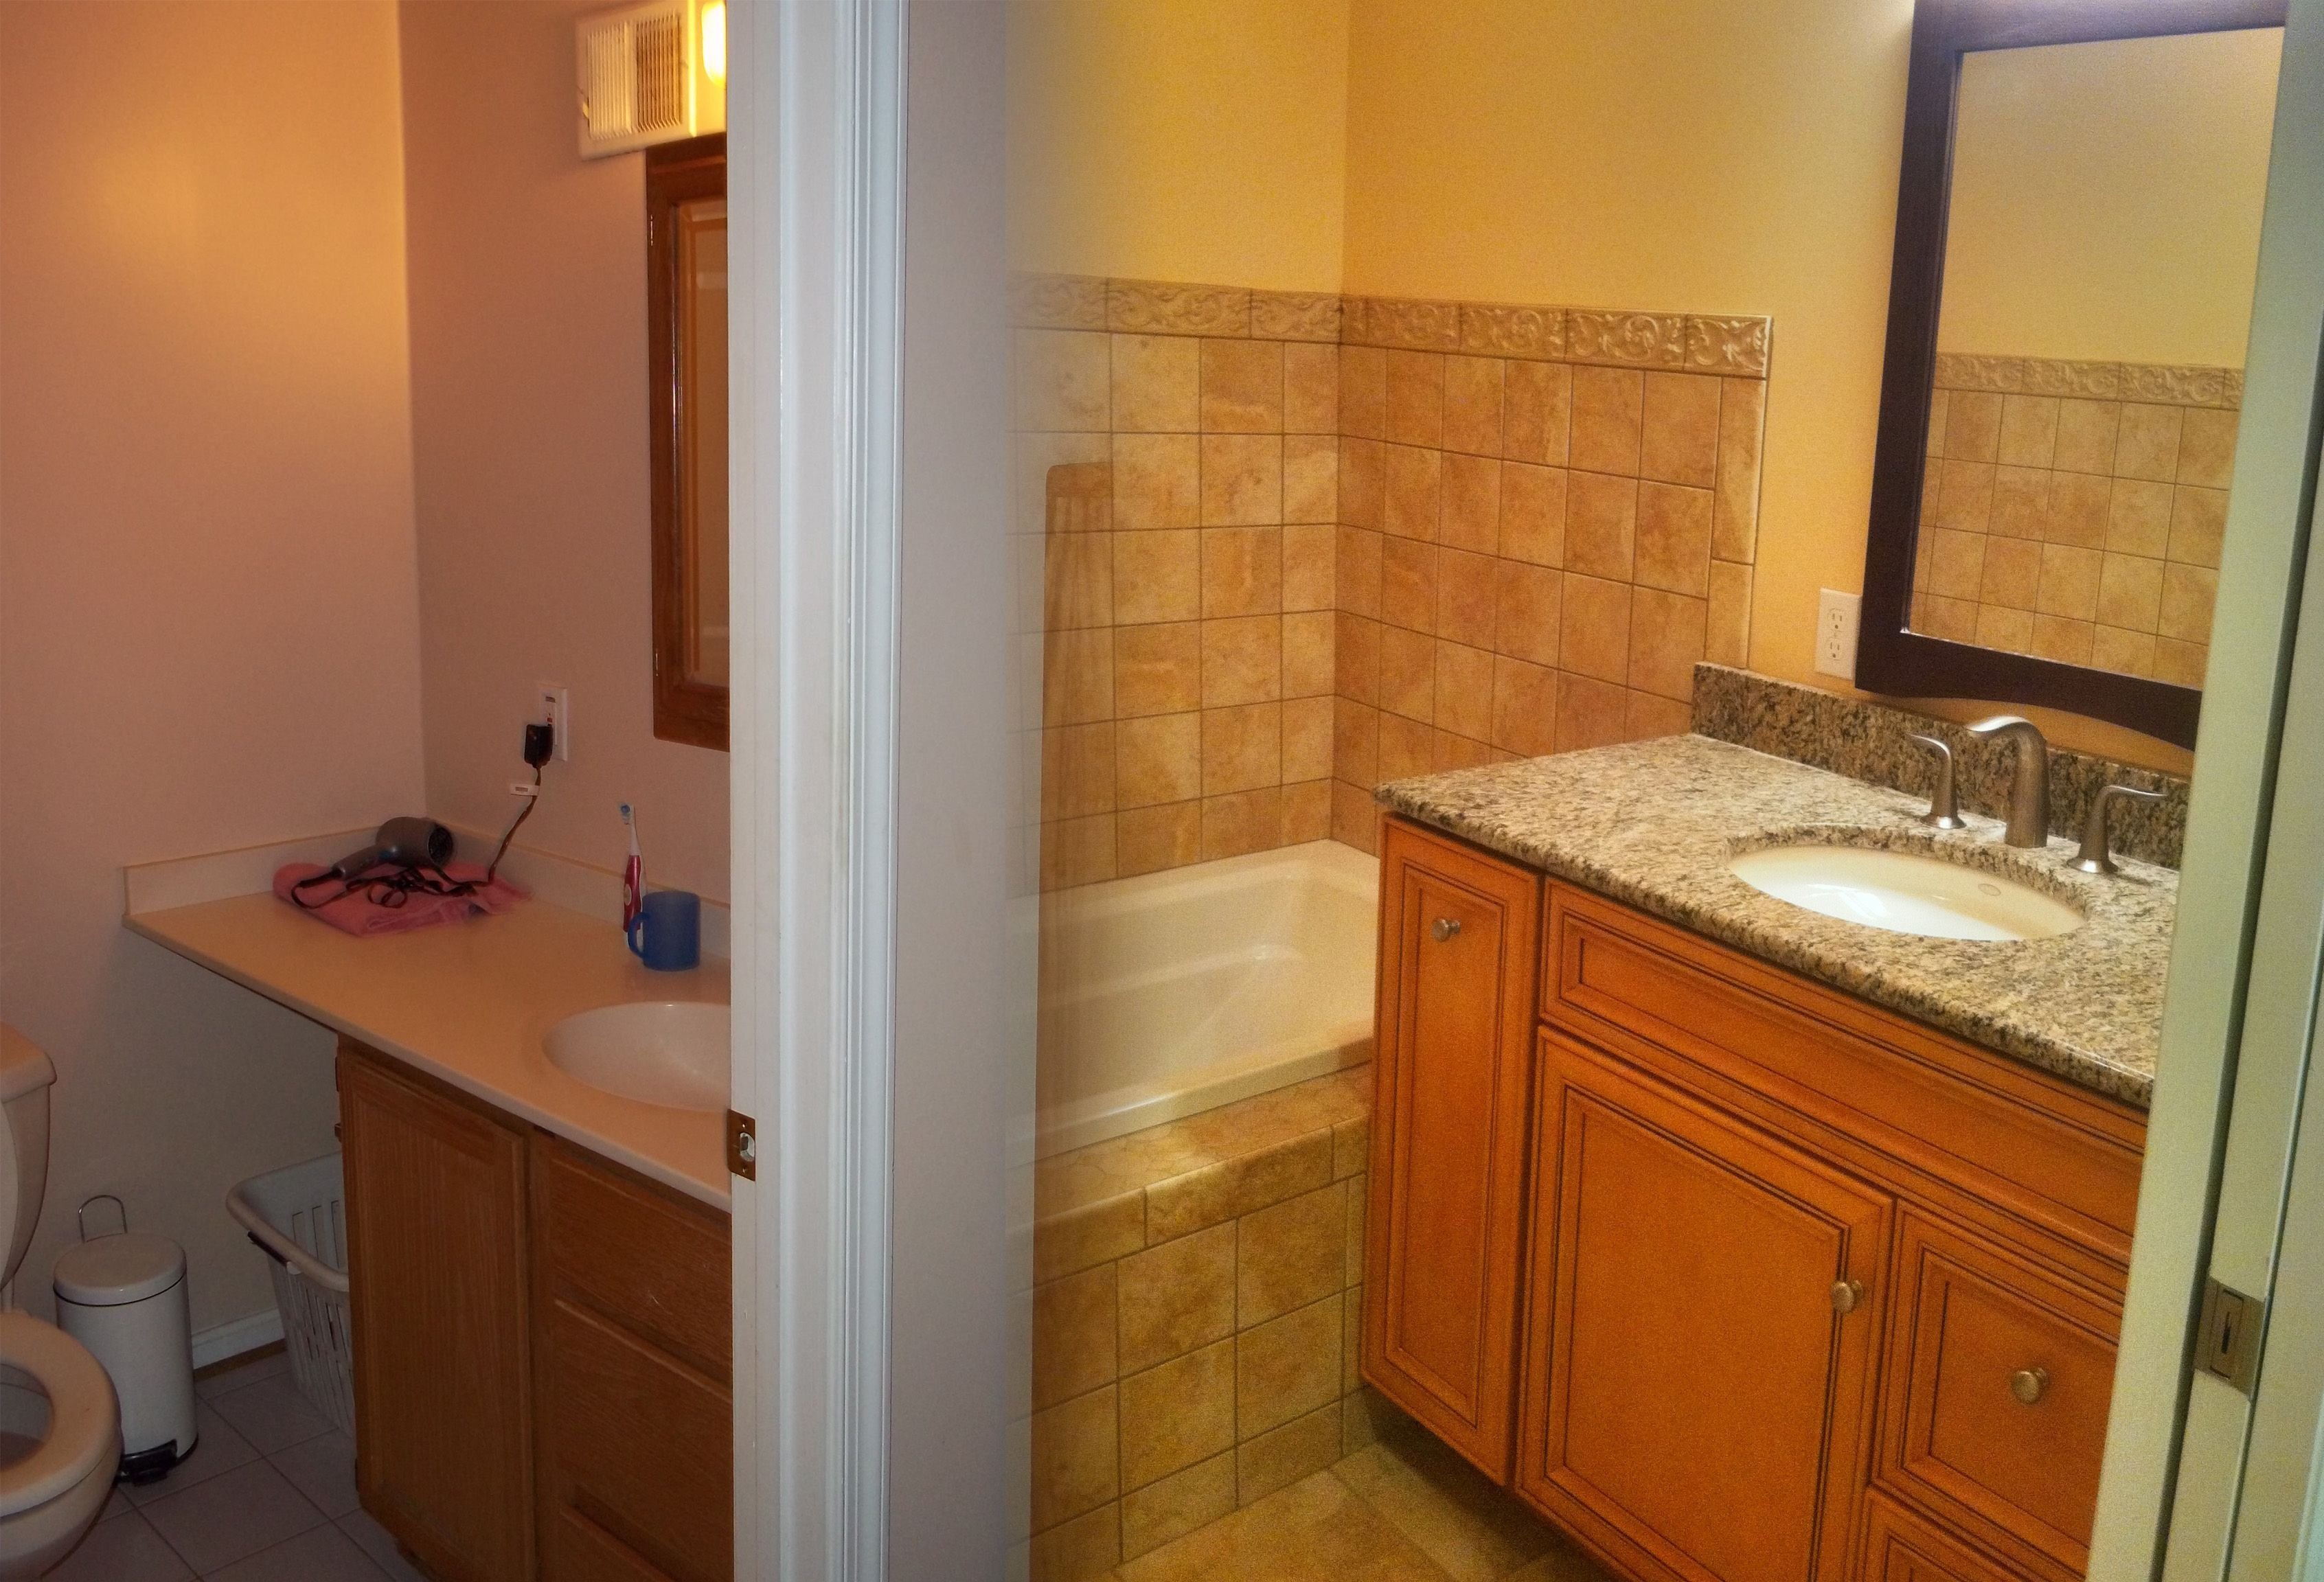 1960s bathroom renovation before and after for Bathroom rehab ideas